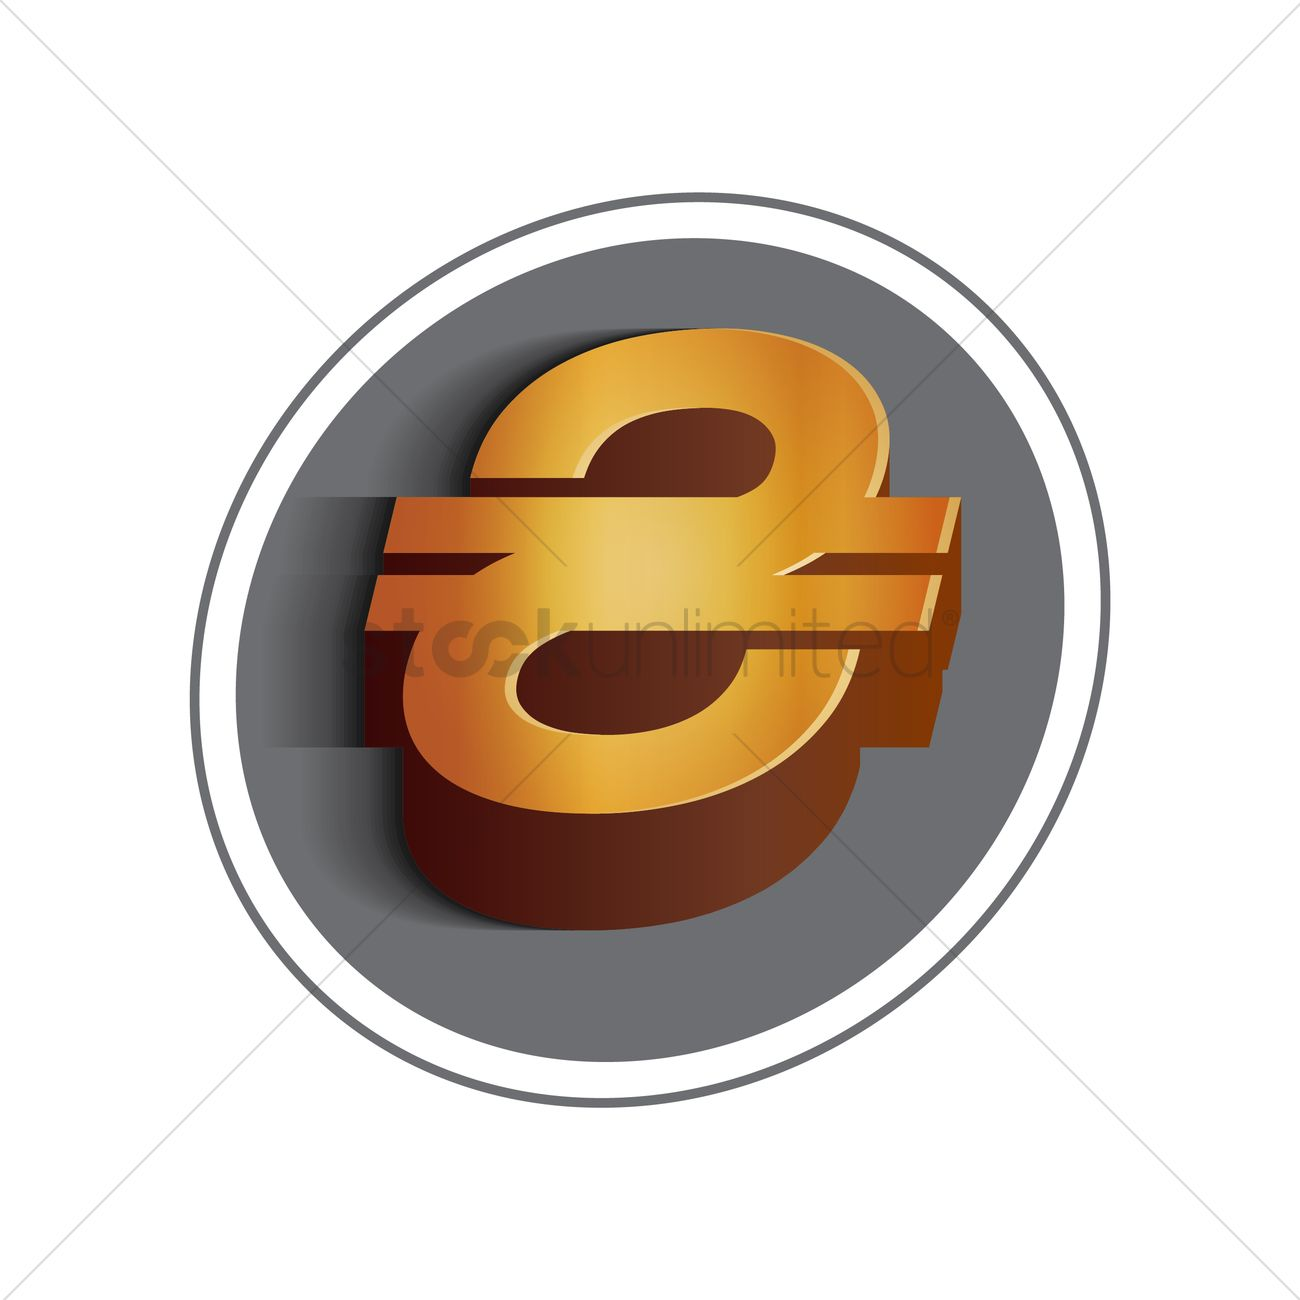 Ukrainian Hryvnia Currency Symbol Vector Image 1611903